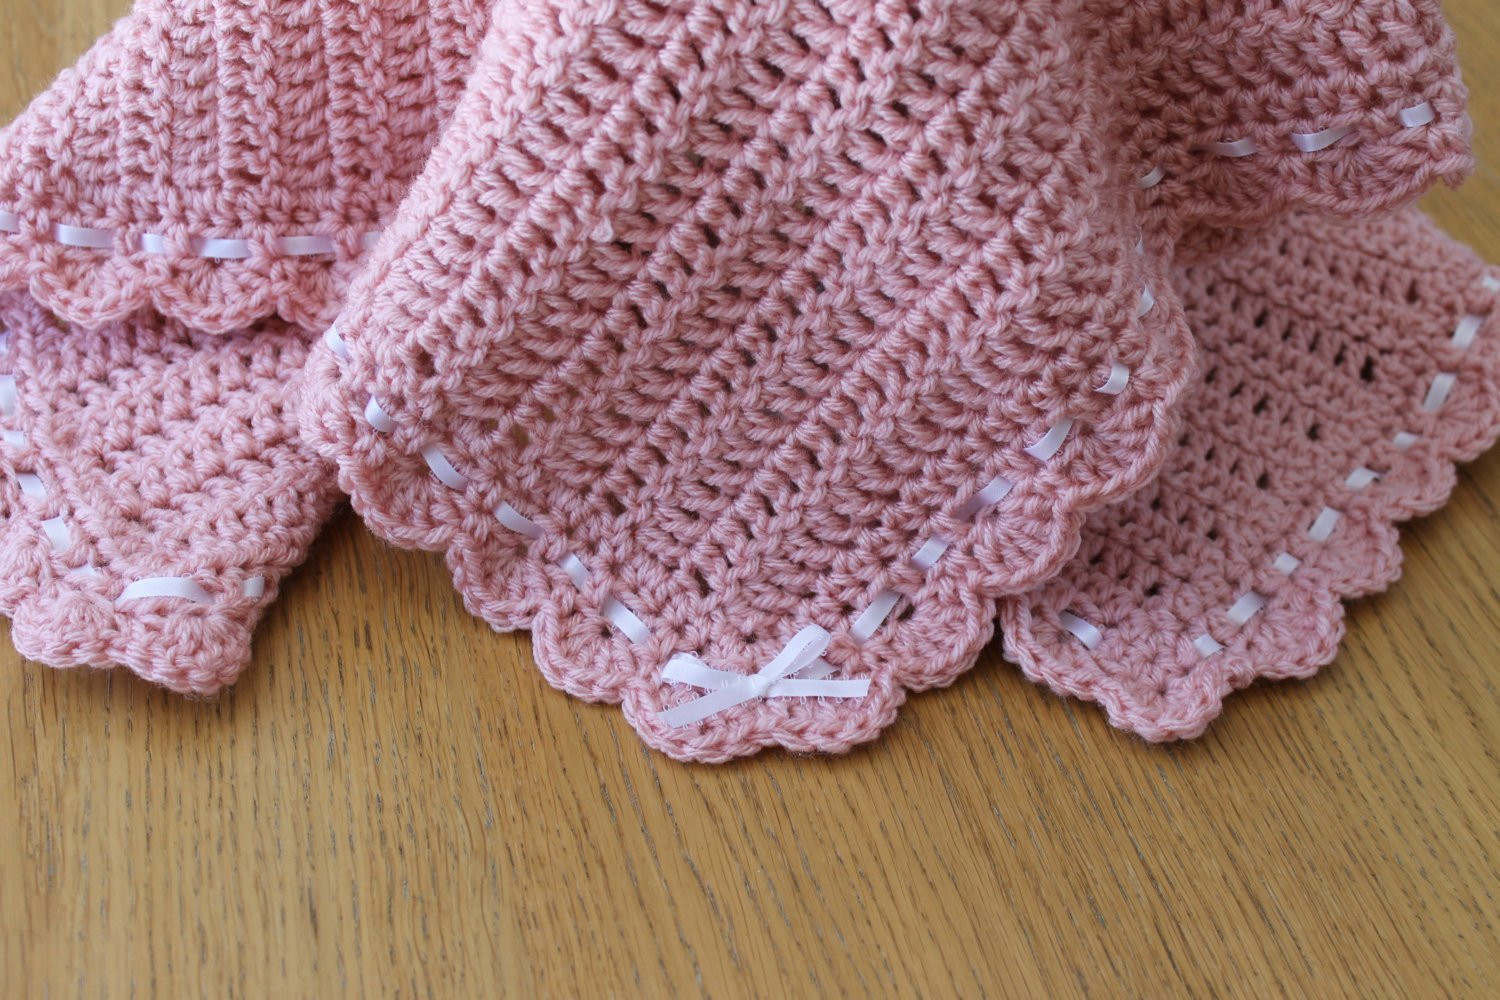 Best Of Crochet Pink Baby Blanket Afghan with Shell Edging by Crochet Baby Blanket Edging Of Wonderful 42 Images Crochet Baby Blanket Edging